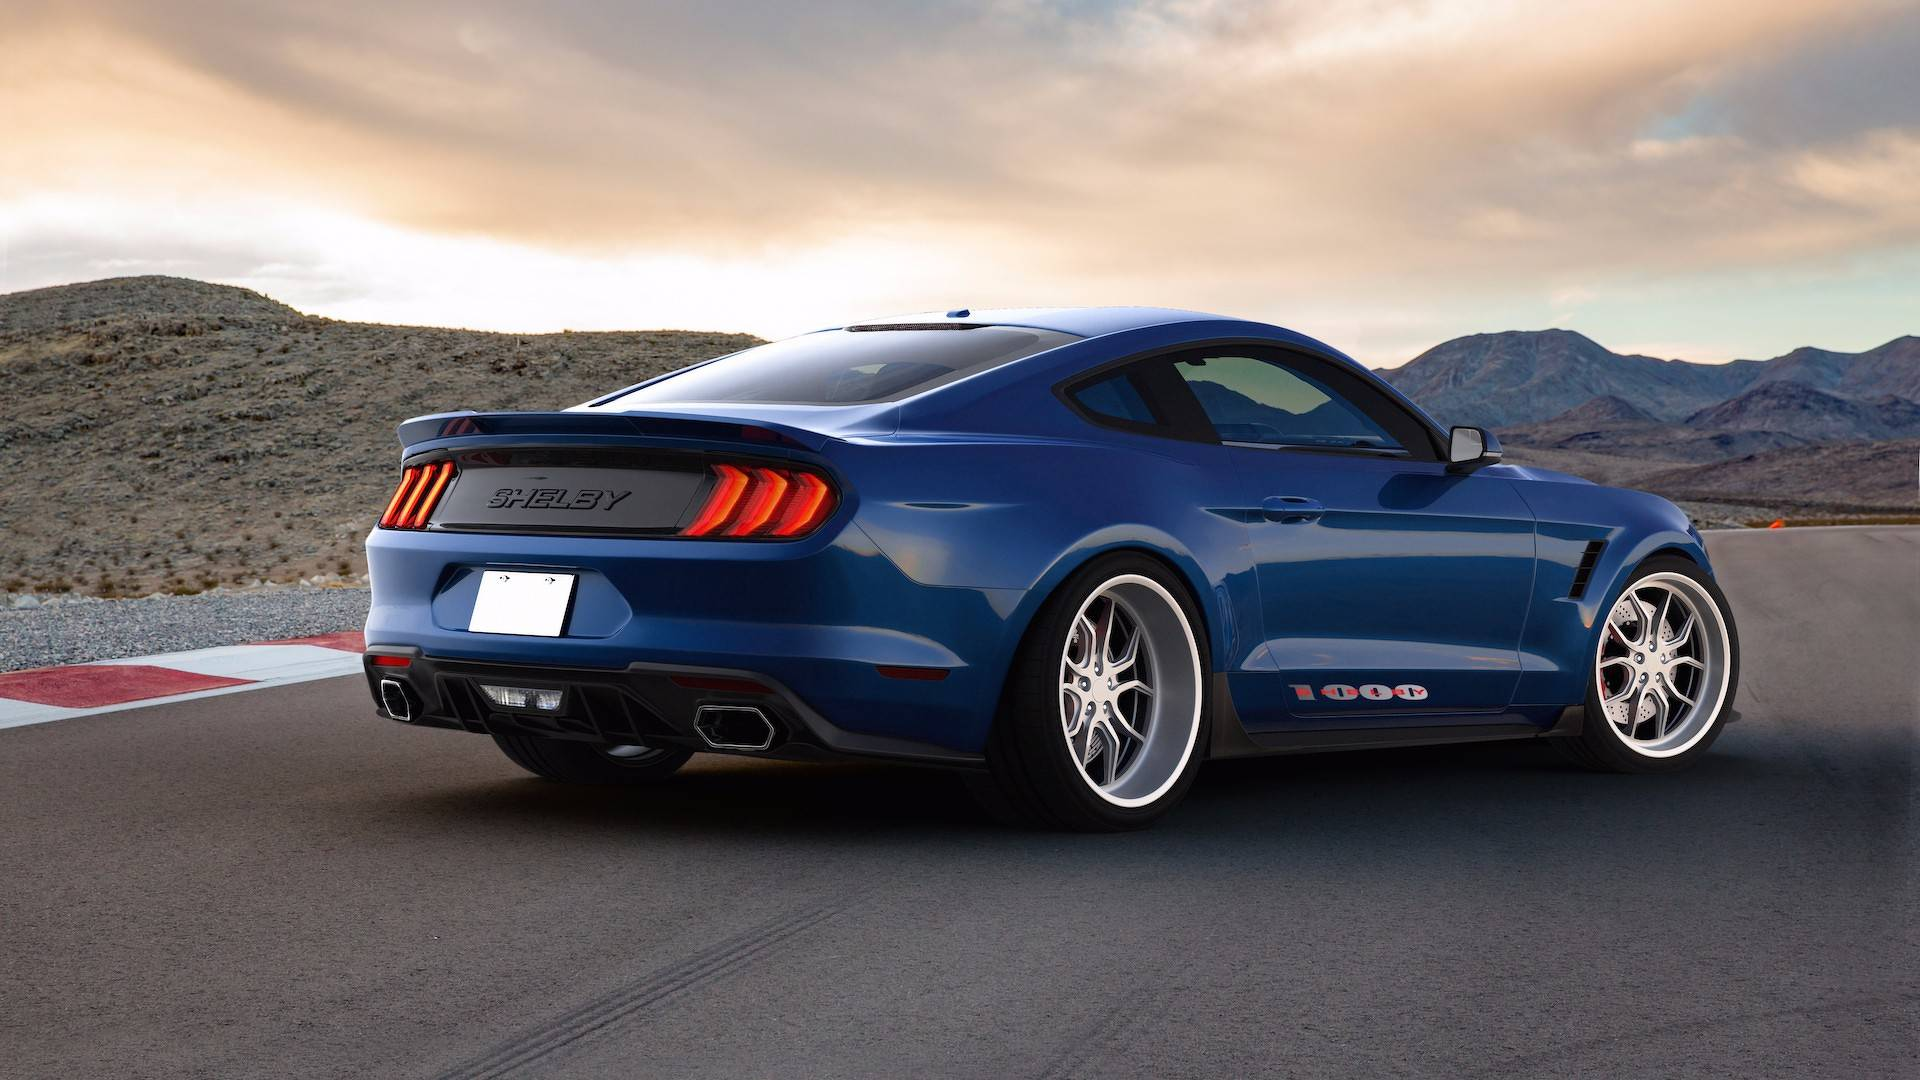 Shelby mustang photo - 5